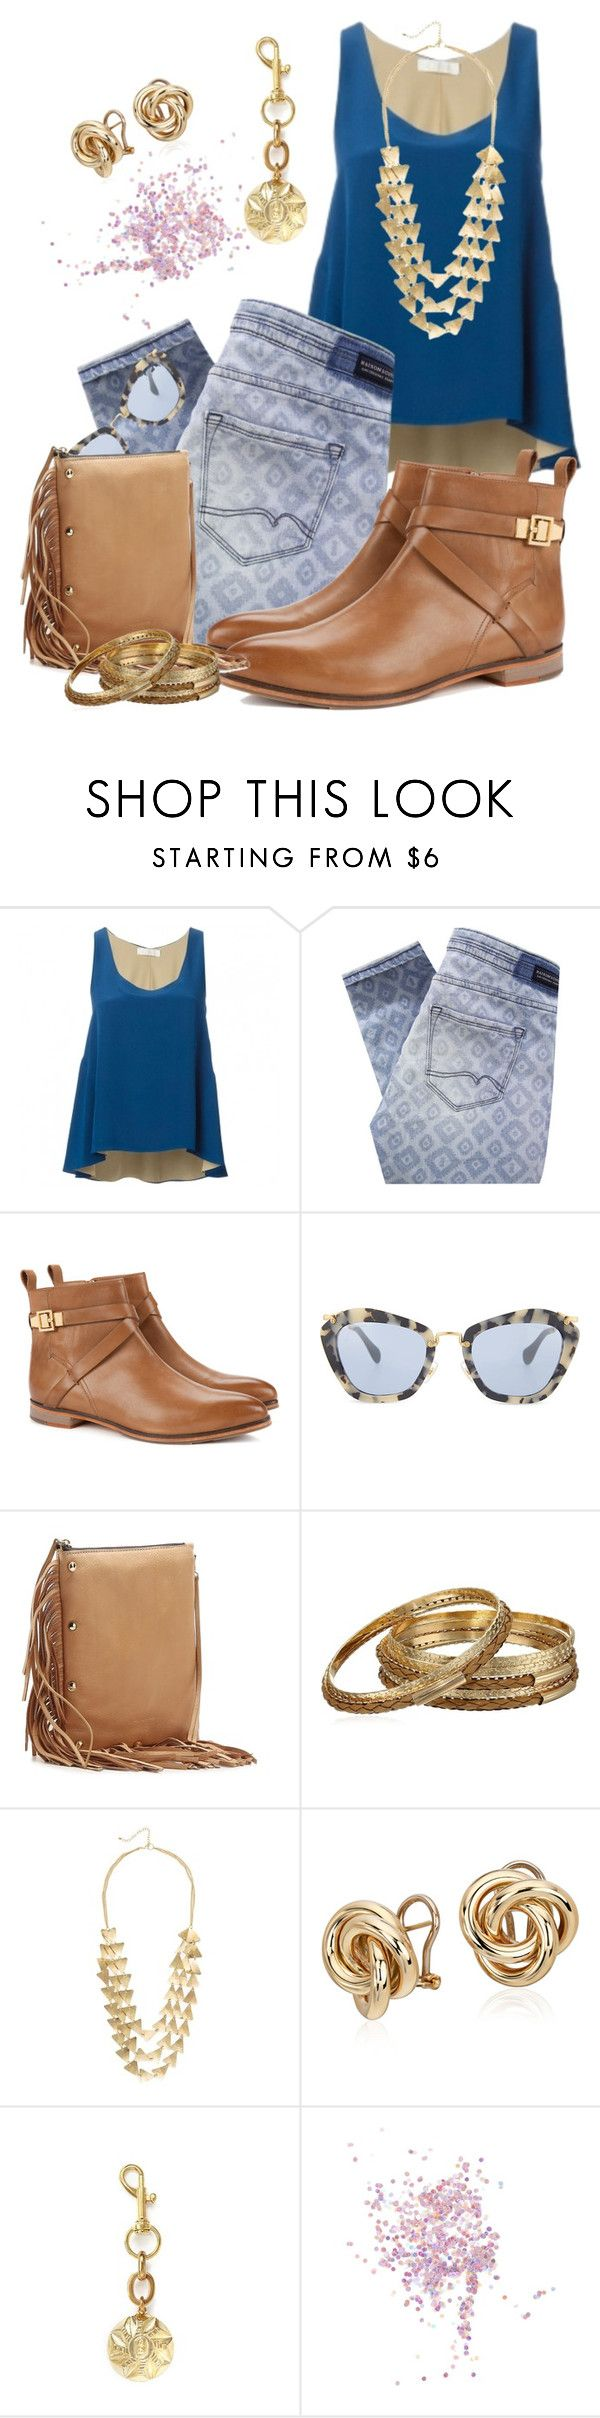 """Untitled #140"" by lelee09 ❤ liked on Polyvore featuring Maison Scotch, Ted Baker, Miu Miu, Hayden-Harnett, Blue Nile, Lulu Frost and Topshop"